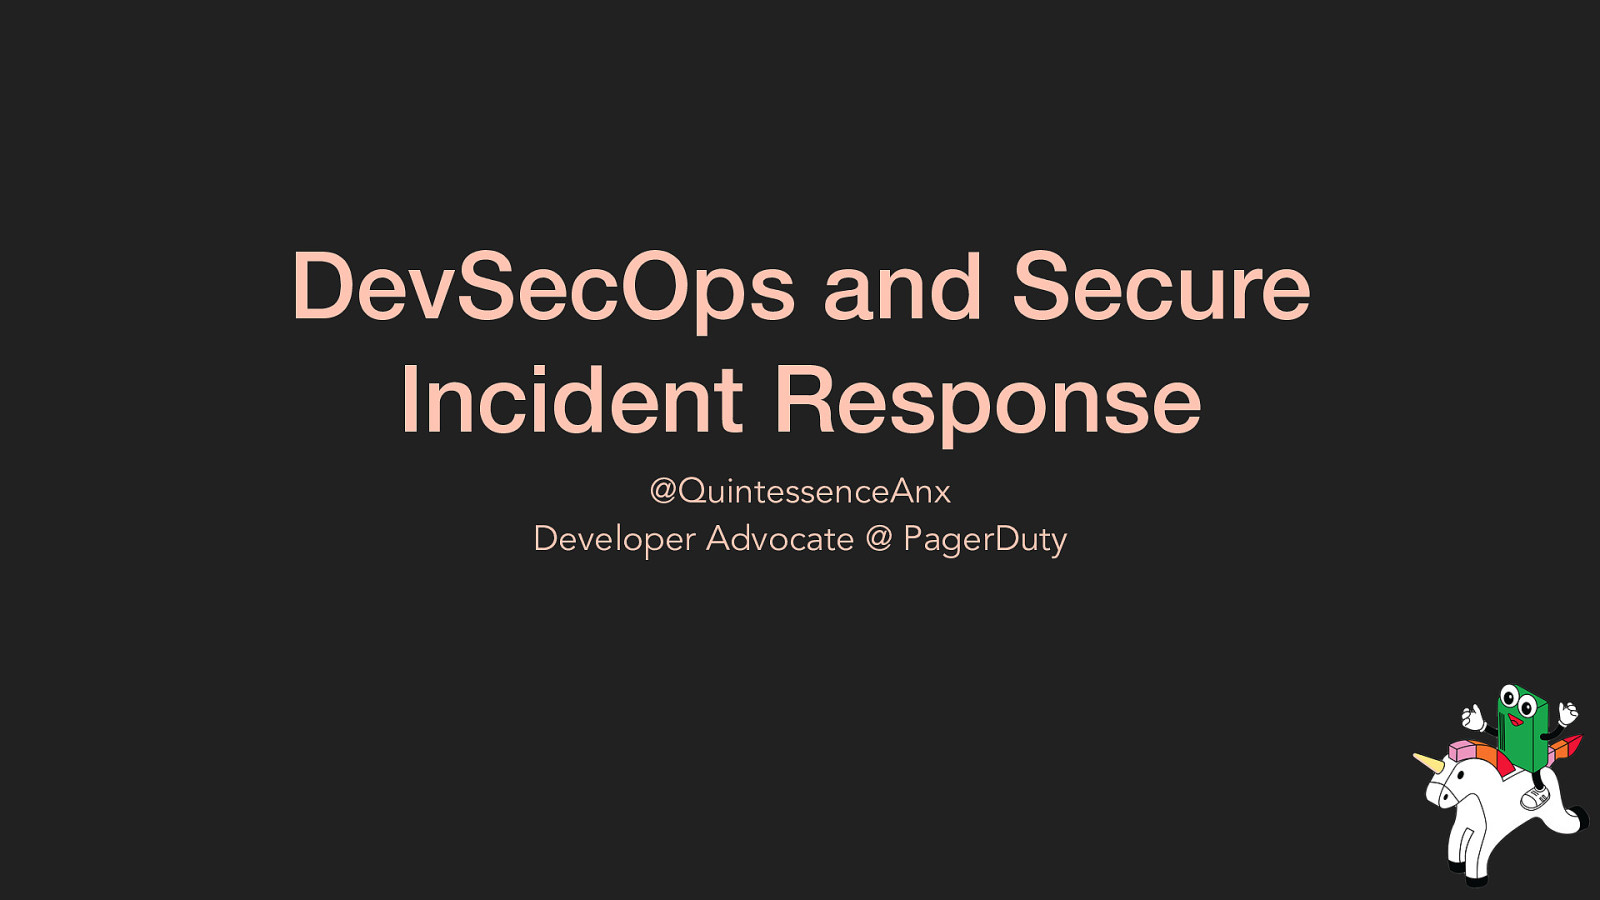 DevSecOps and Secure Incident Response